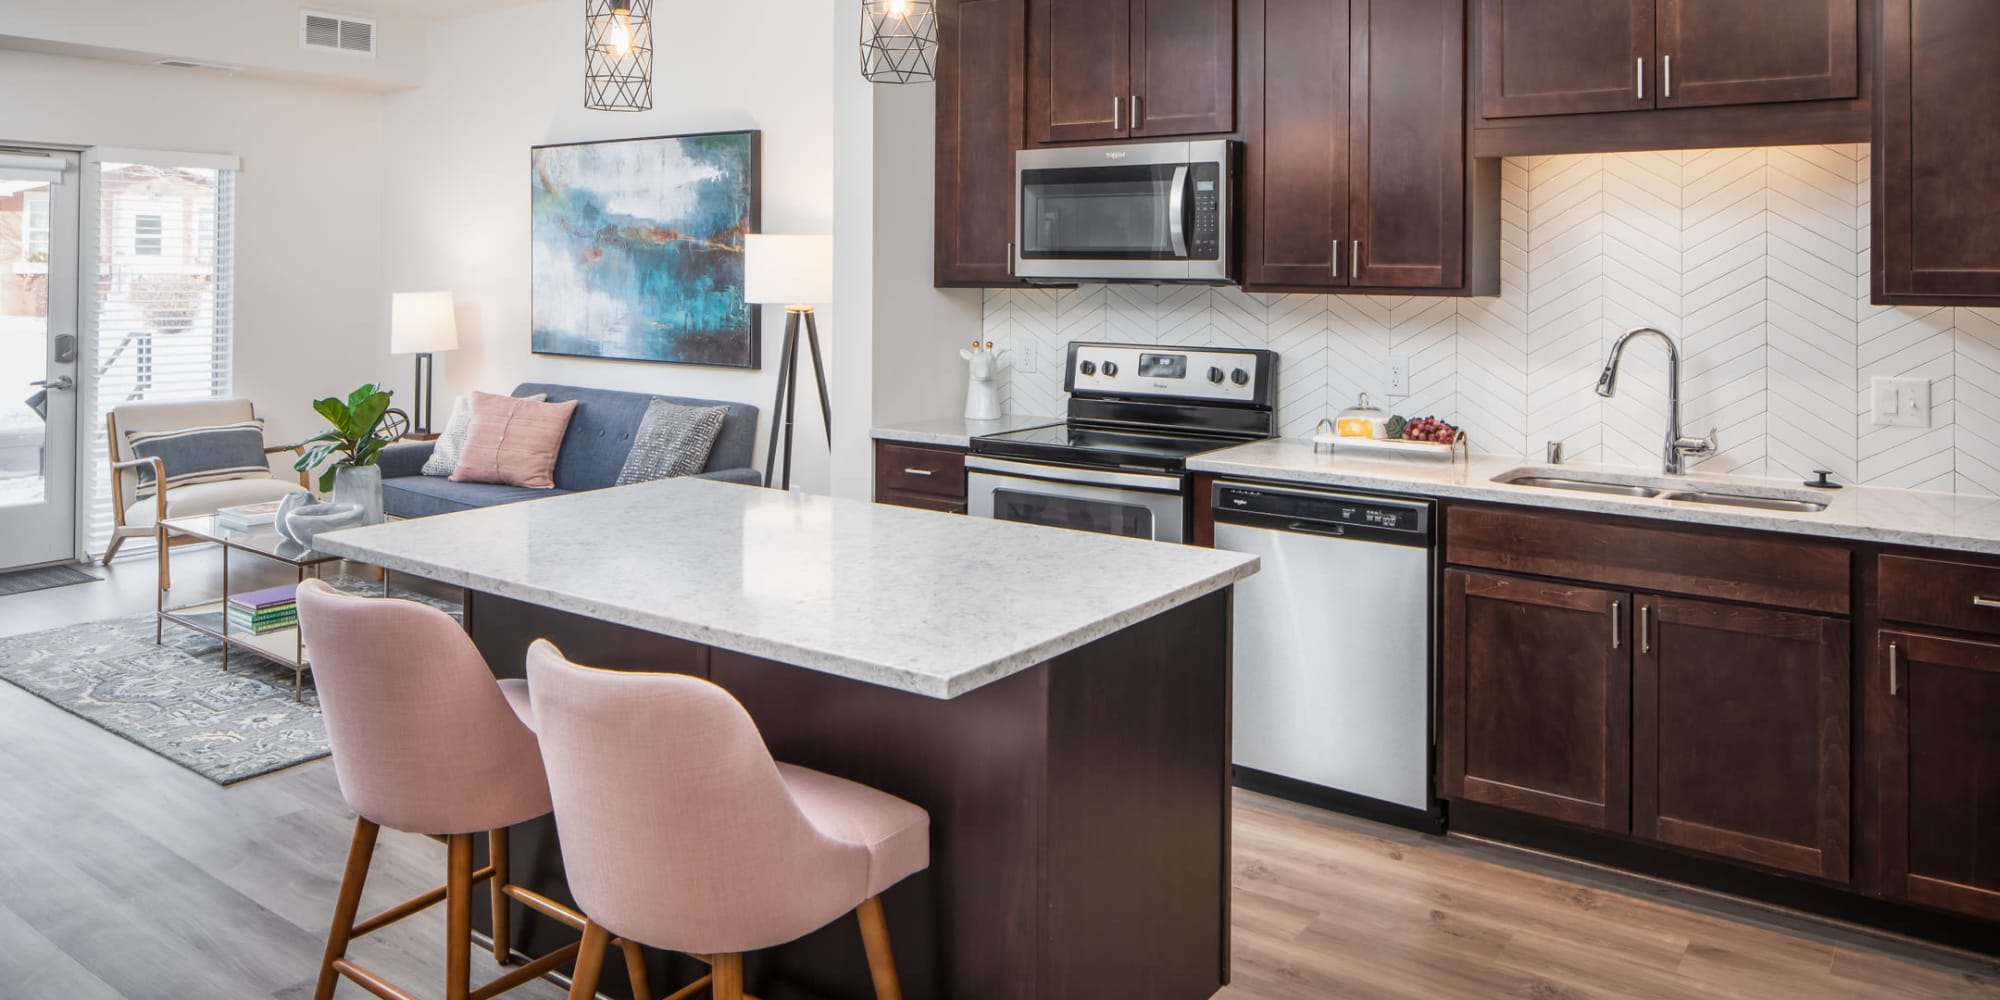 Luxury apartments at Oaks Minnehaha Longfellow in Minneapolis, Minnesota